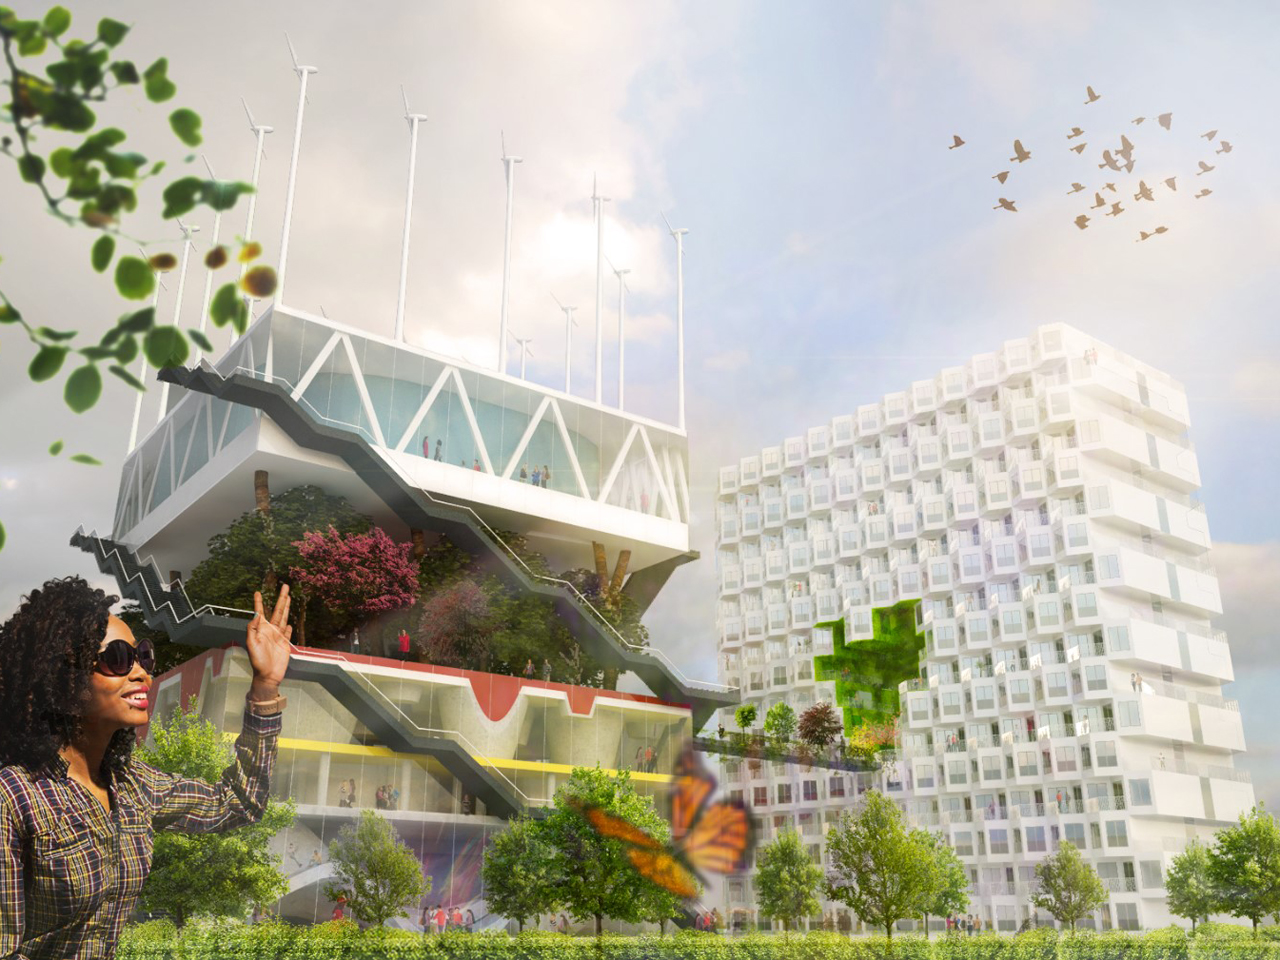 MVRDV's Expo 2000 in Hannover is to be revitalized and integrated in the city's university facilities